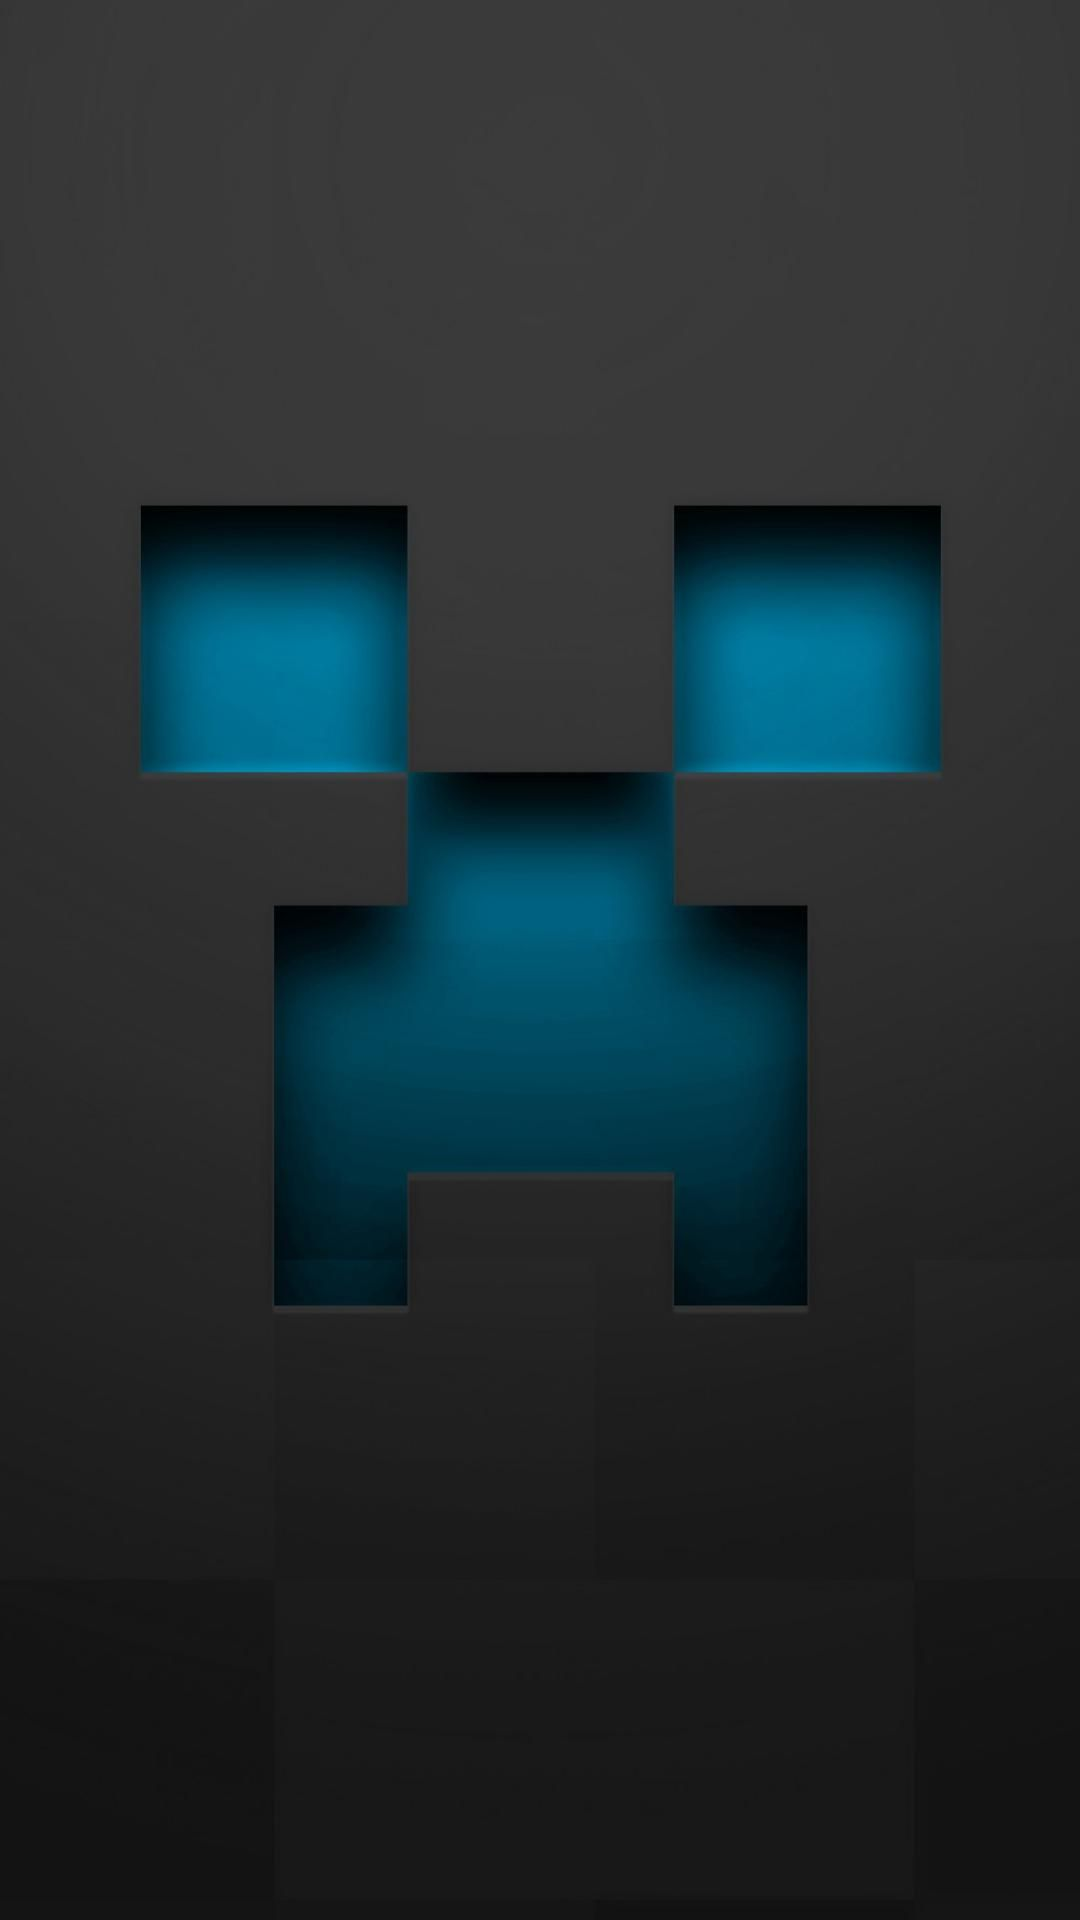 1080x1920 Minecraft blue creeper gray pixelart wallpaper | iPhone ...